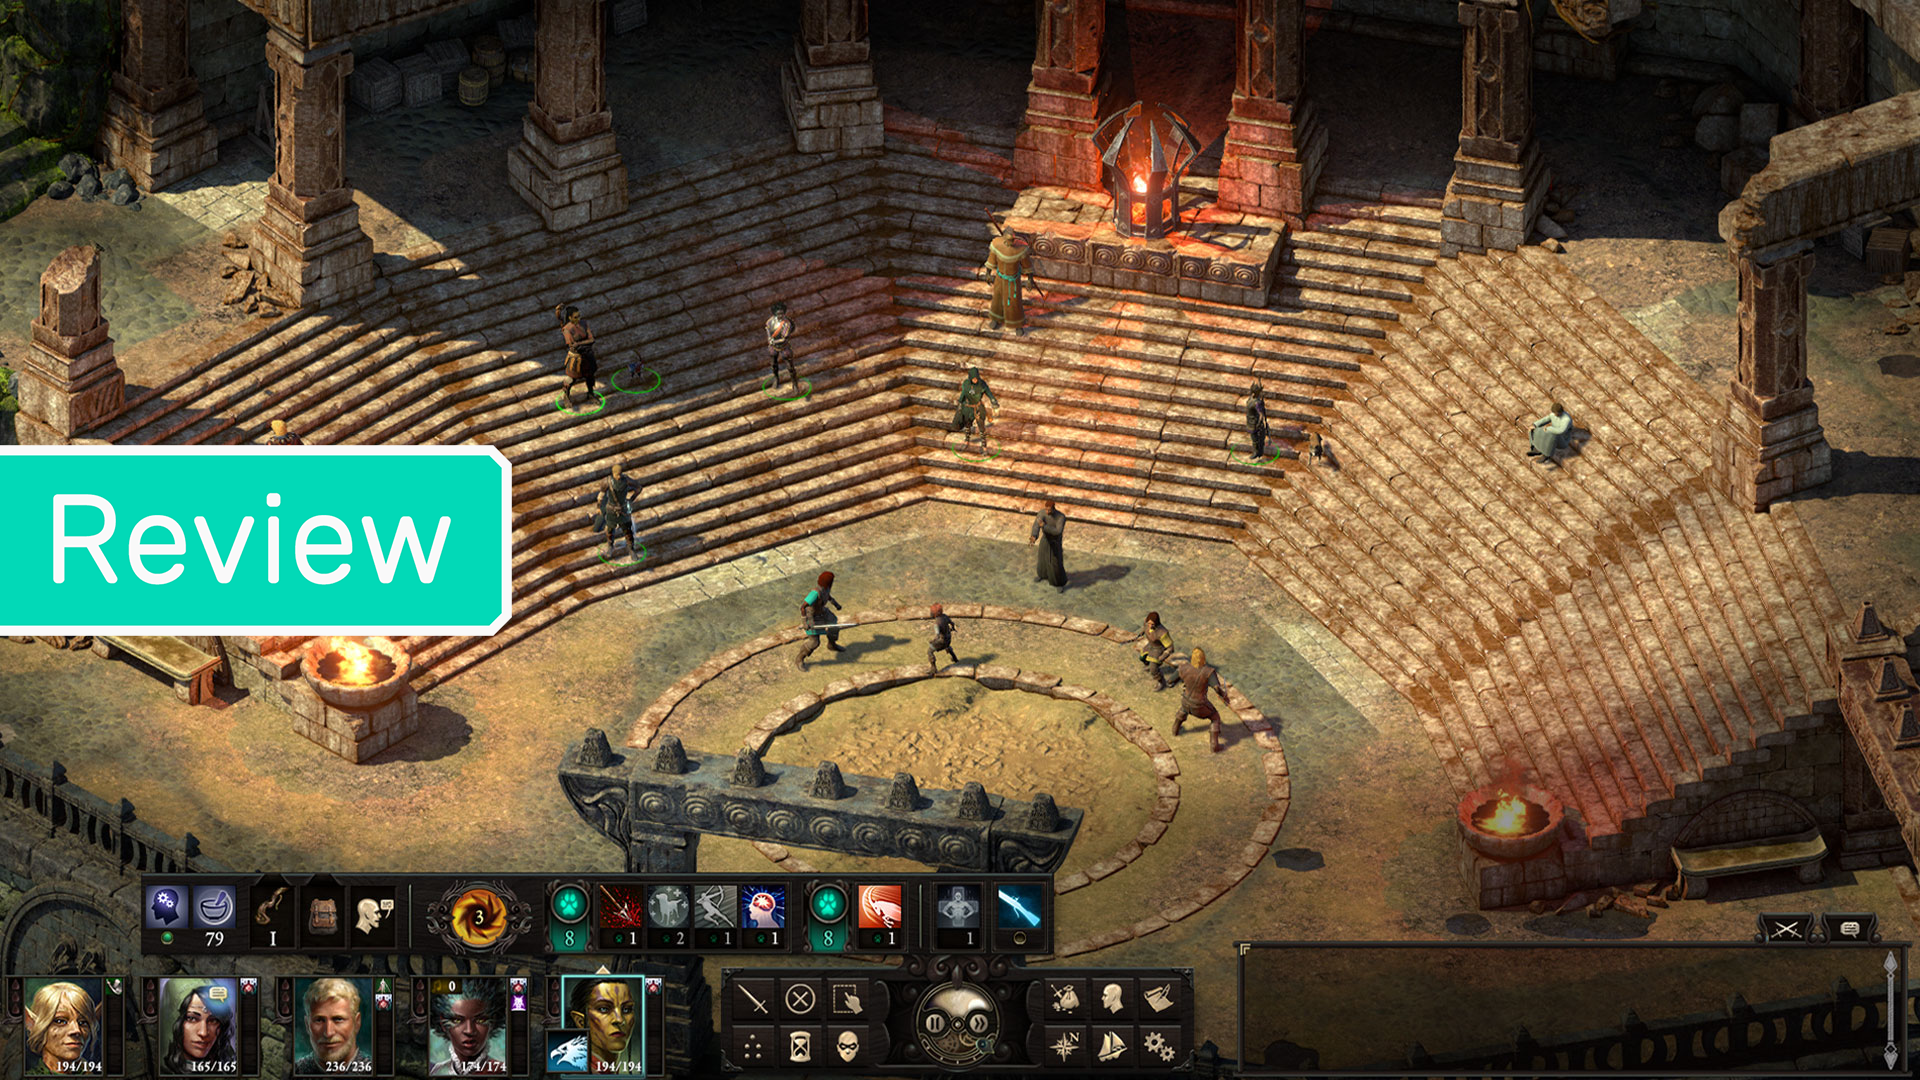 Pillars Of Eternity World Map Complete.Pillars Of Eternity Ii Deadfire Has Too Many Debts To Pay Waypoint